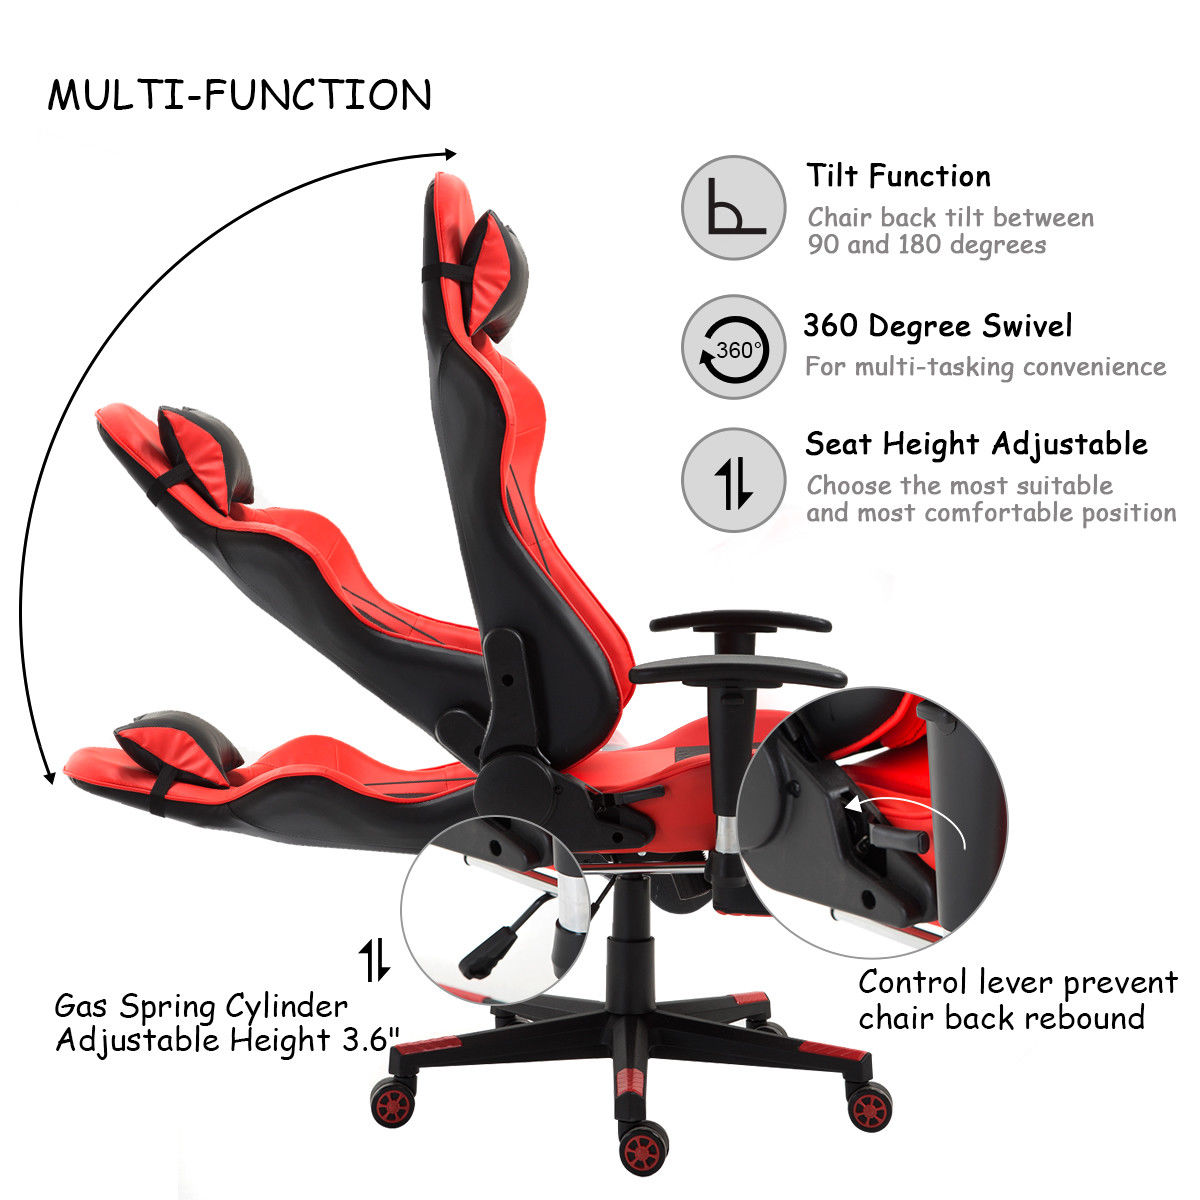 Racing Desk Chair Best Gaming Chairs For Pc Giantex Ergonomic High Back Office With Lumbar Support Footrest Modern Reclining Furniture Hw56576re In From